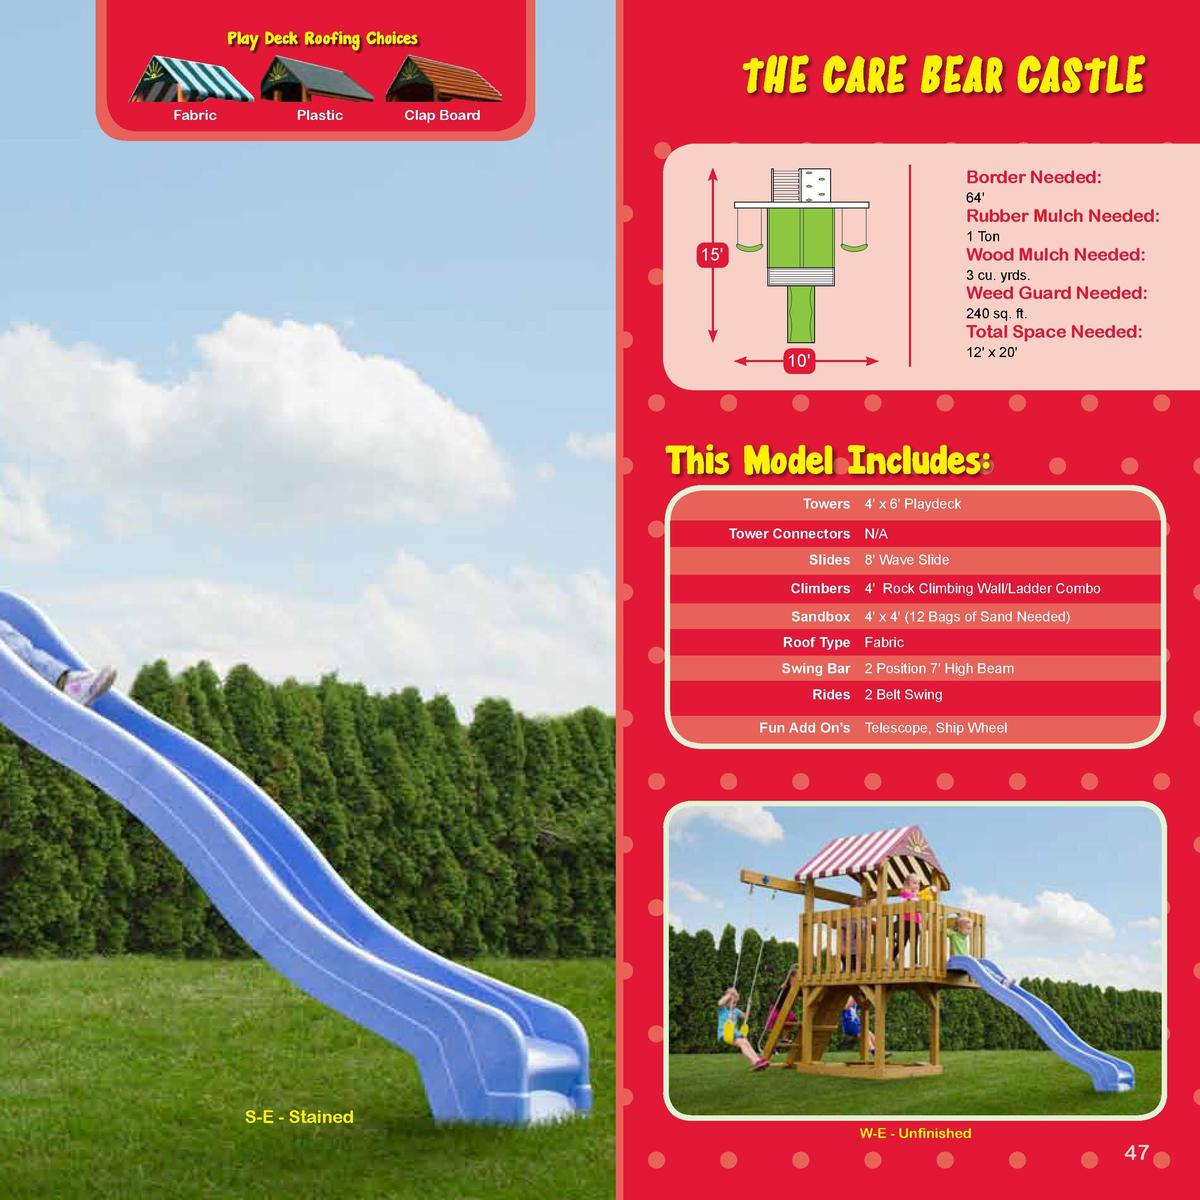 TEDDY BEAR SERIES  Play Deck Roofing Choices  The Care Bear Castle  -SERIES-  Fabric  Plastic  Clap Board  Border Needed  ...